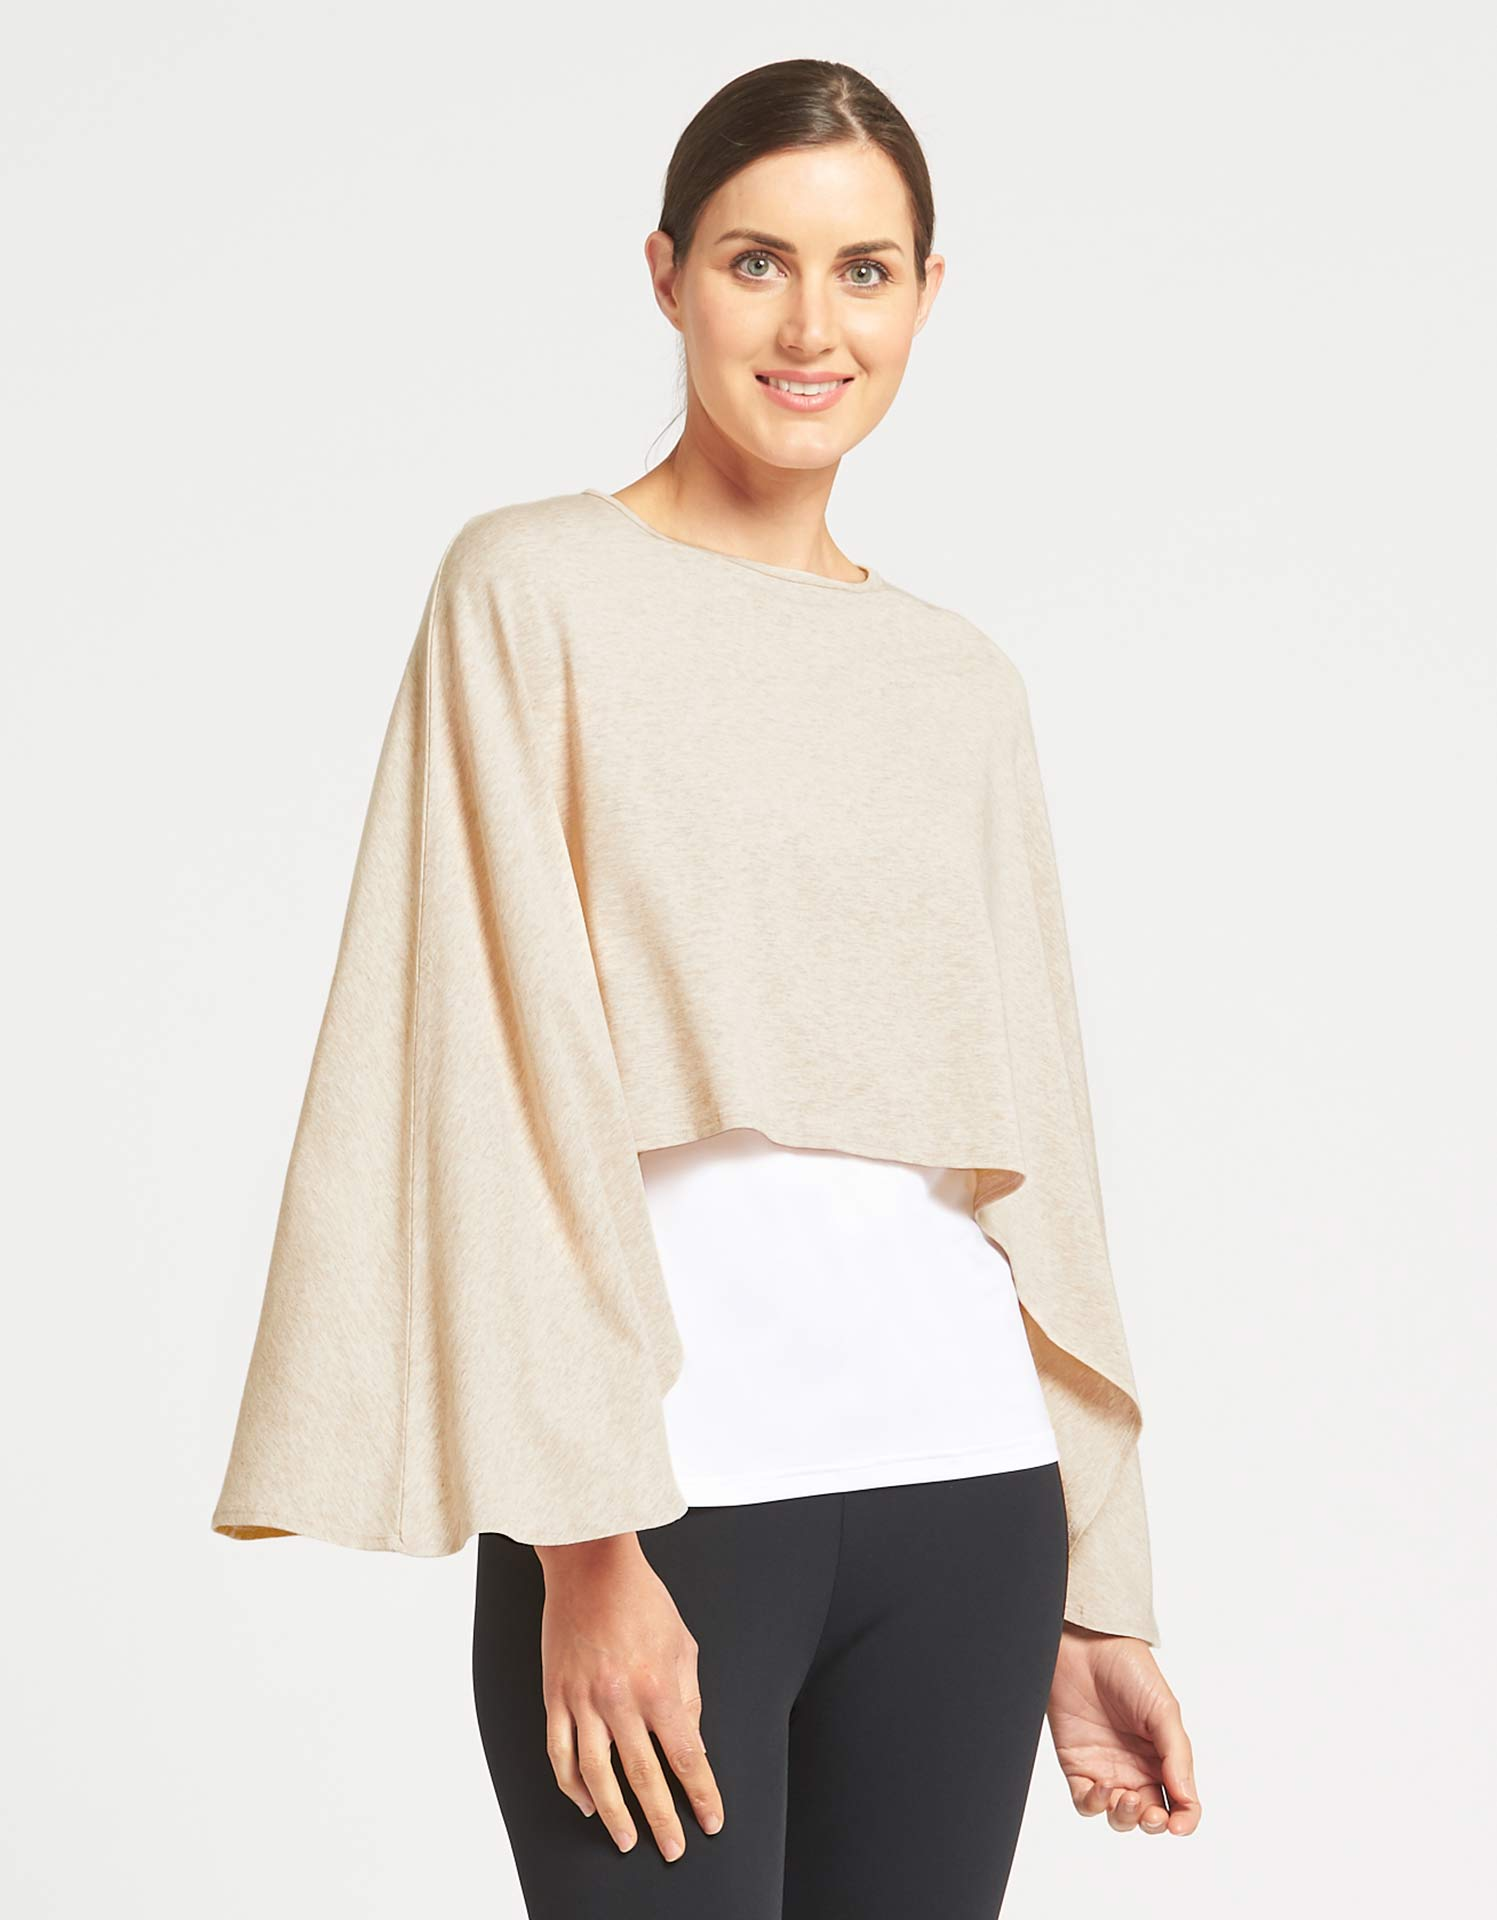 Sun Protective Shrug UPF 50+ Sensitive Collection